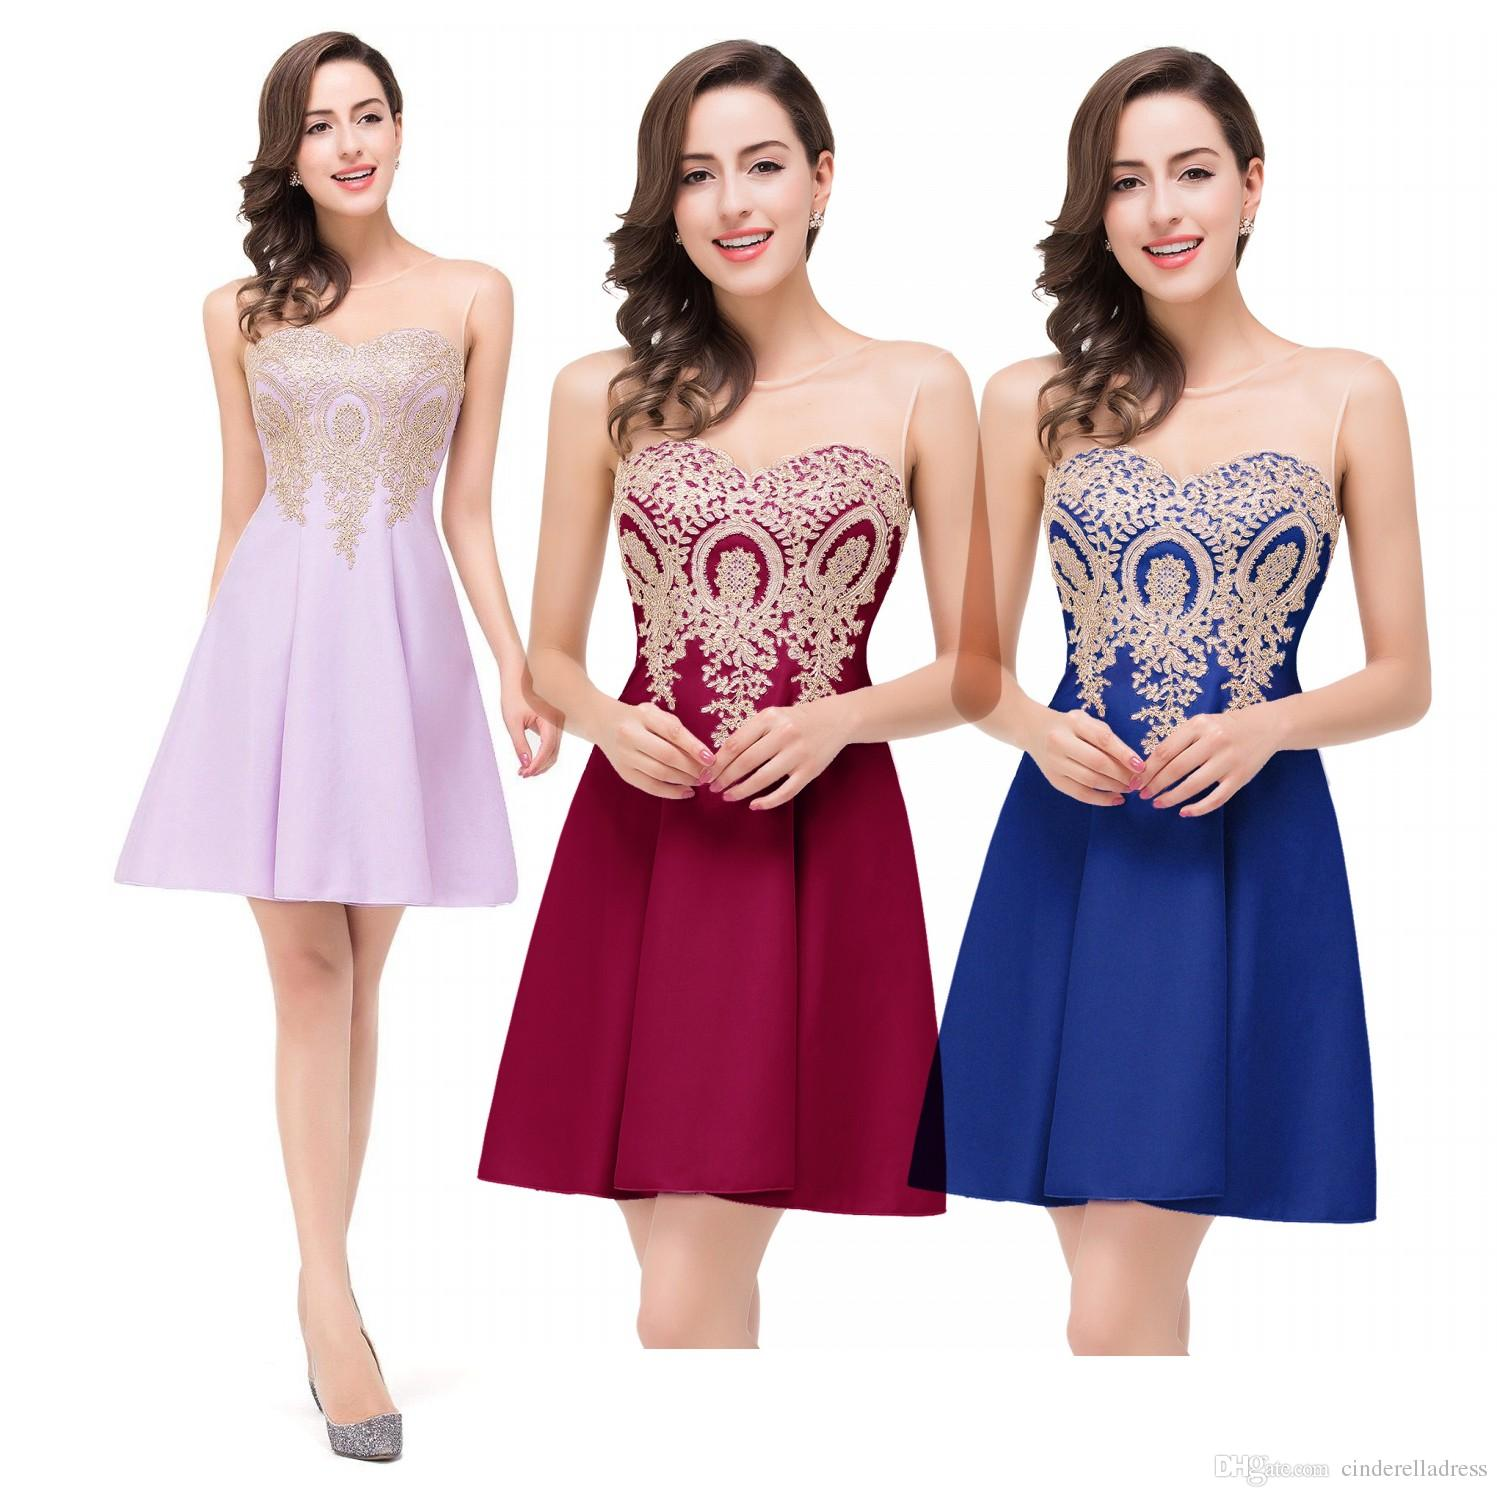 Under 50 lace summer beach bridesmaid dresses new cheap plus size cheap long bridesmaid dresses peach discount purple bridesmaid dresses jackets ombrellifo Choice Image